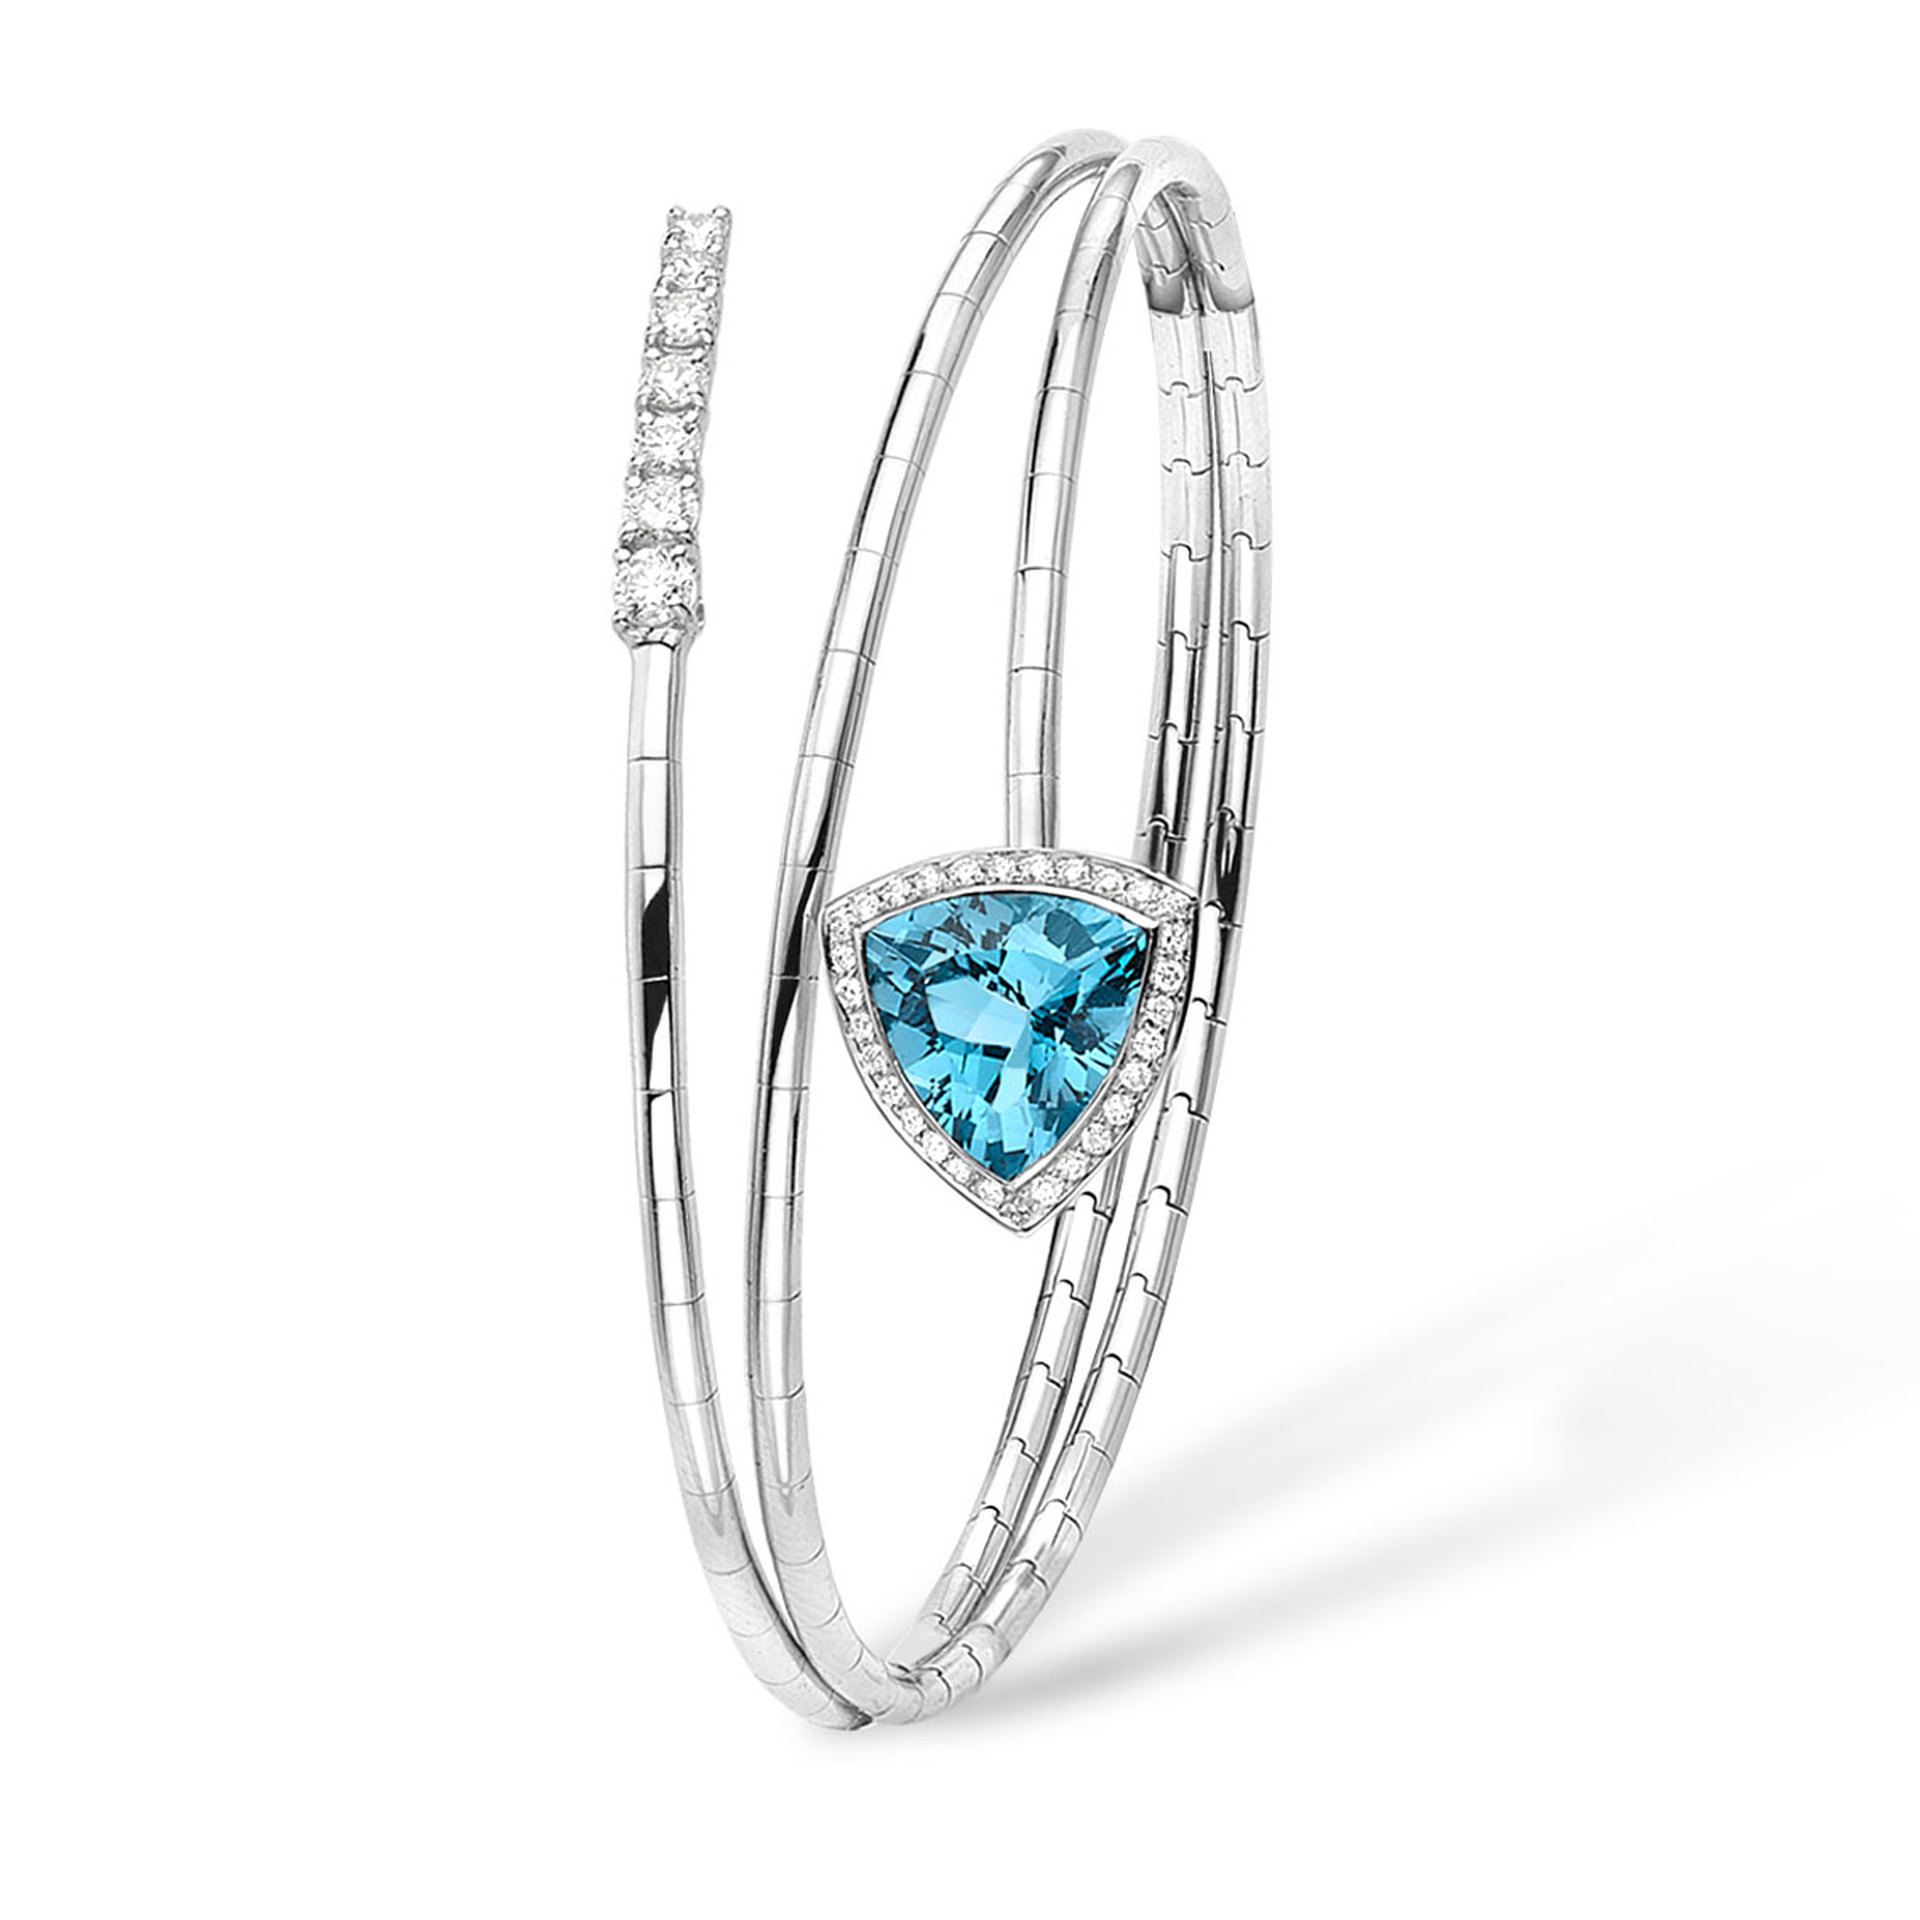 18ct White gold, Blue topaz and Diamond set sprung Bangle